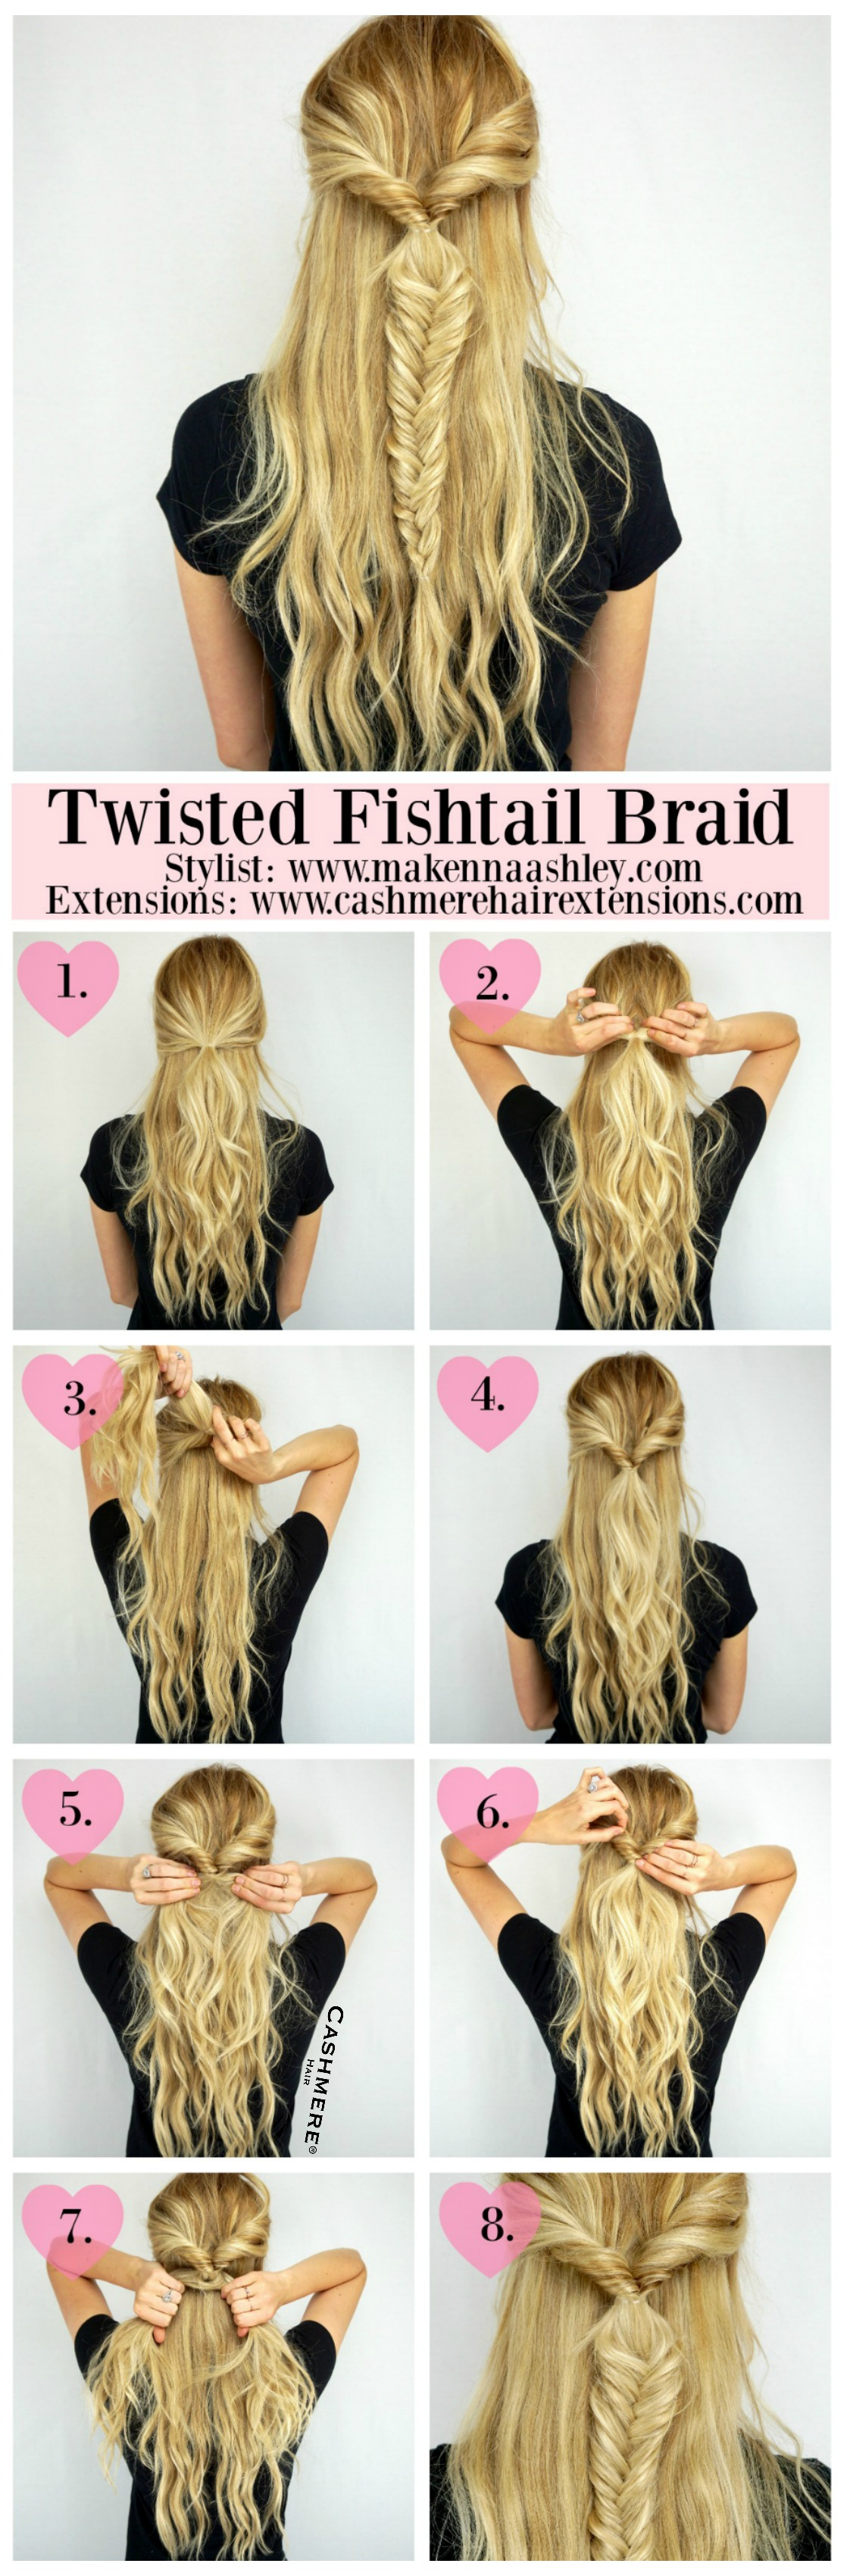 Twisted Fishtail Braid Tutorial | Cashmere Hair Extensions Fishtail Braid How To